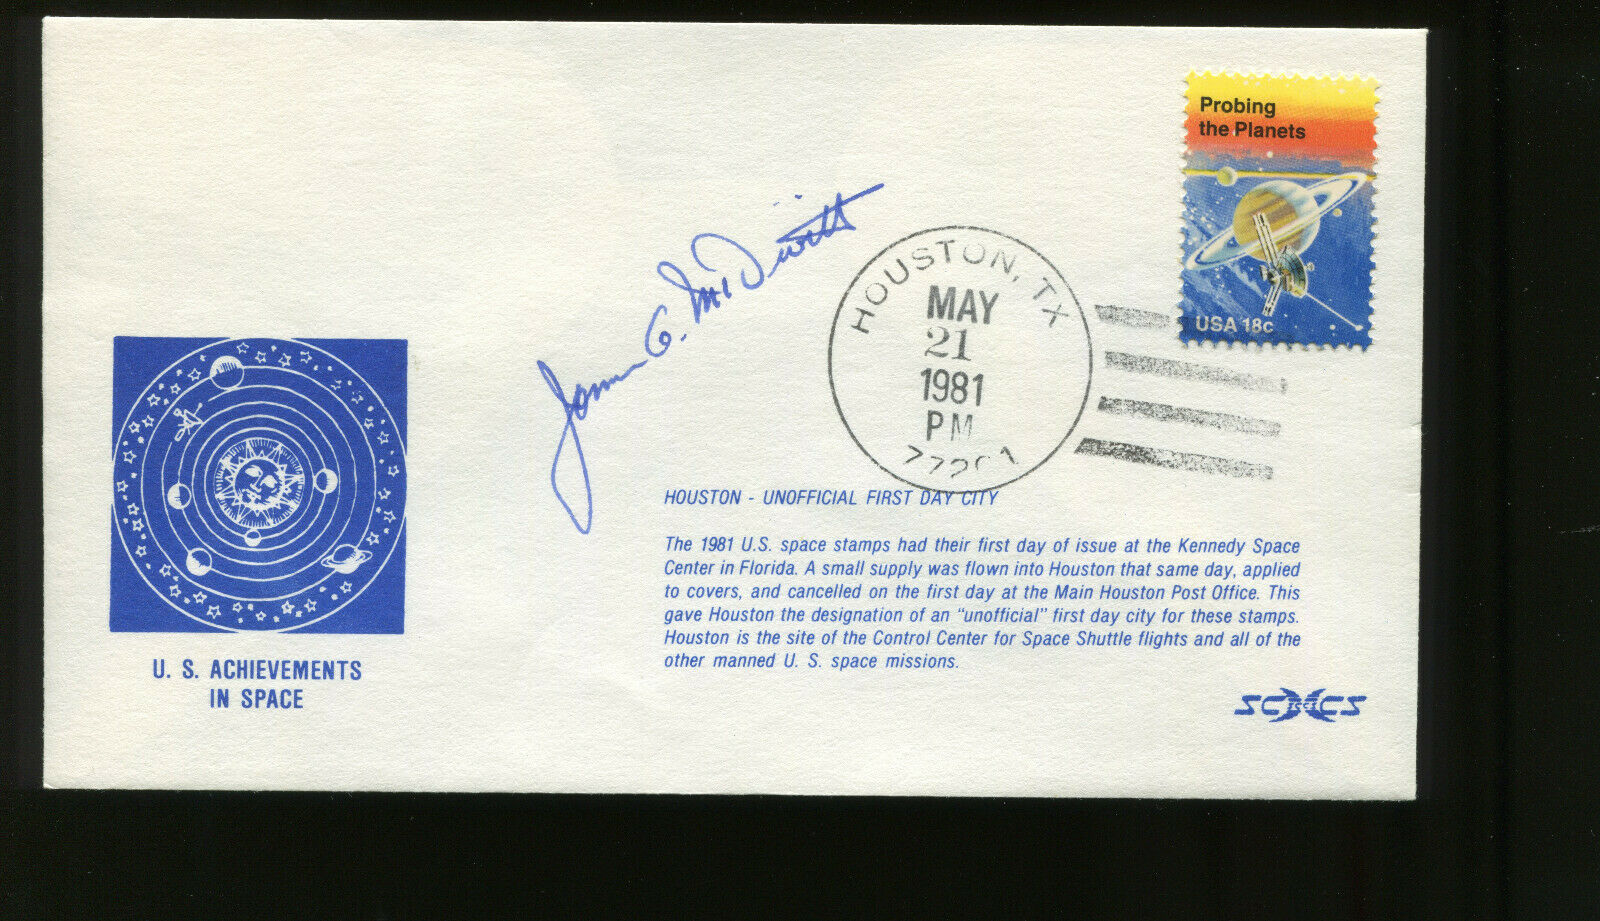 s l1600 - Astronaut James A. McDivitt Signed on May 21 1981 US Space Achievement Issue FDC